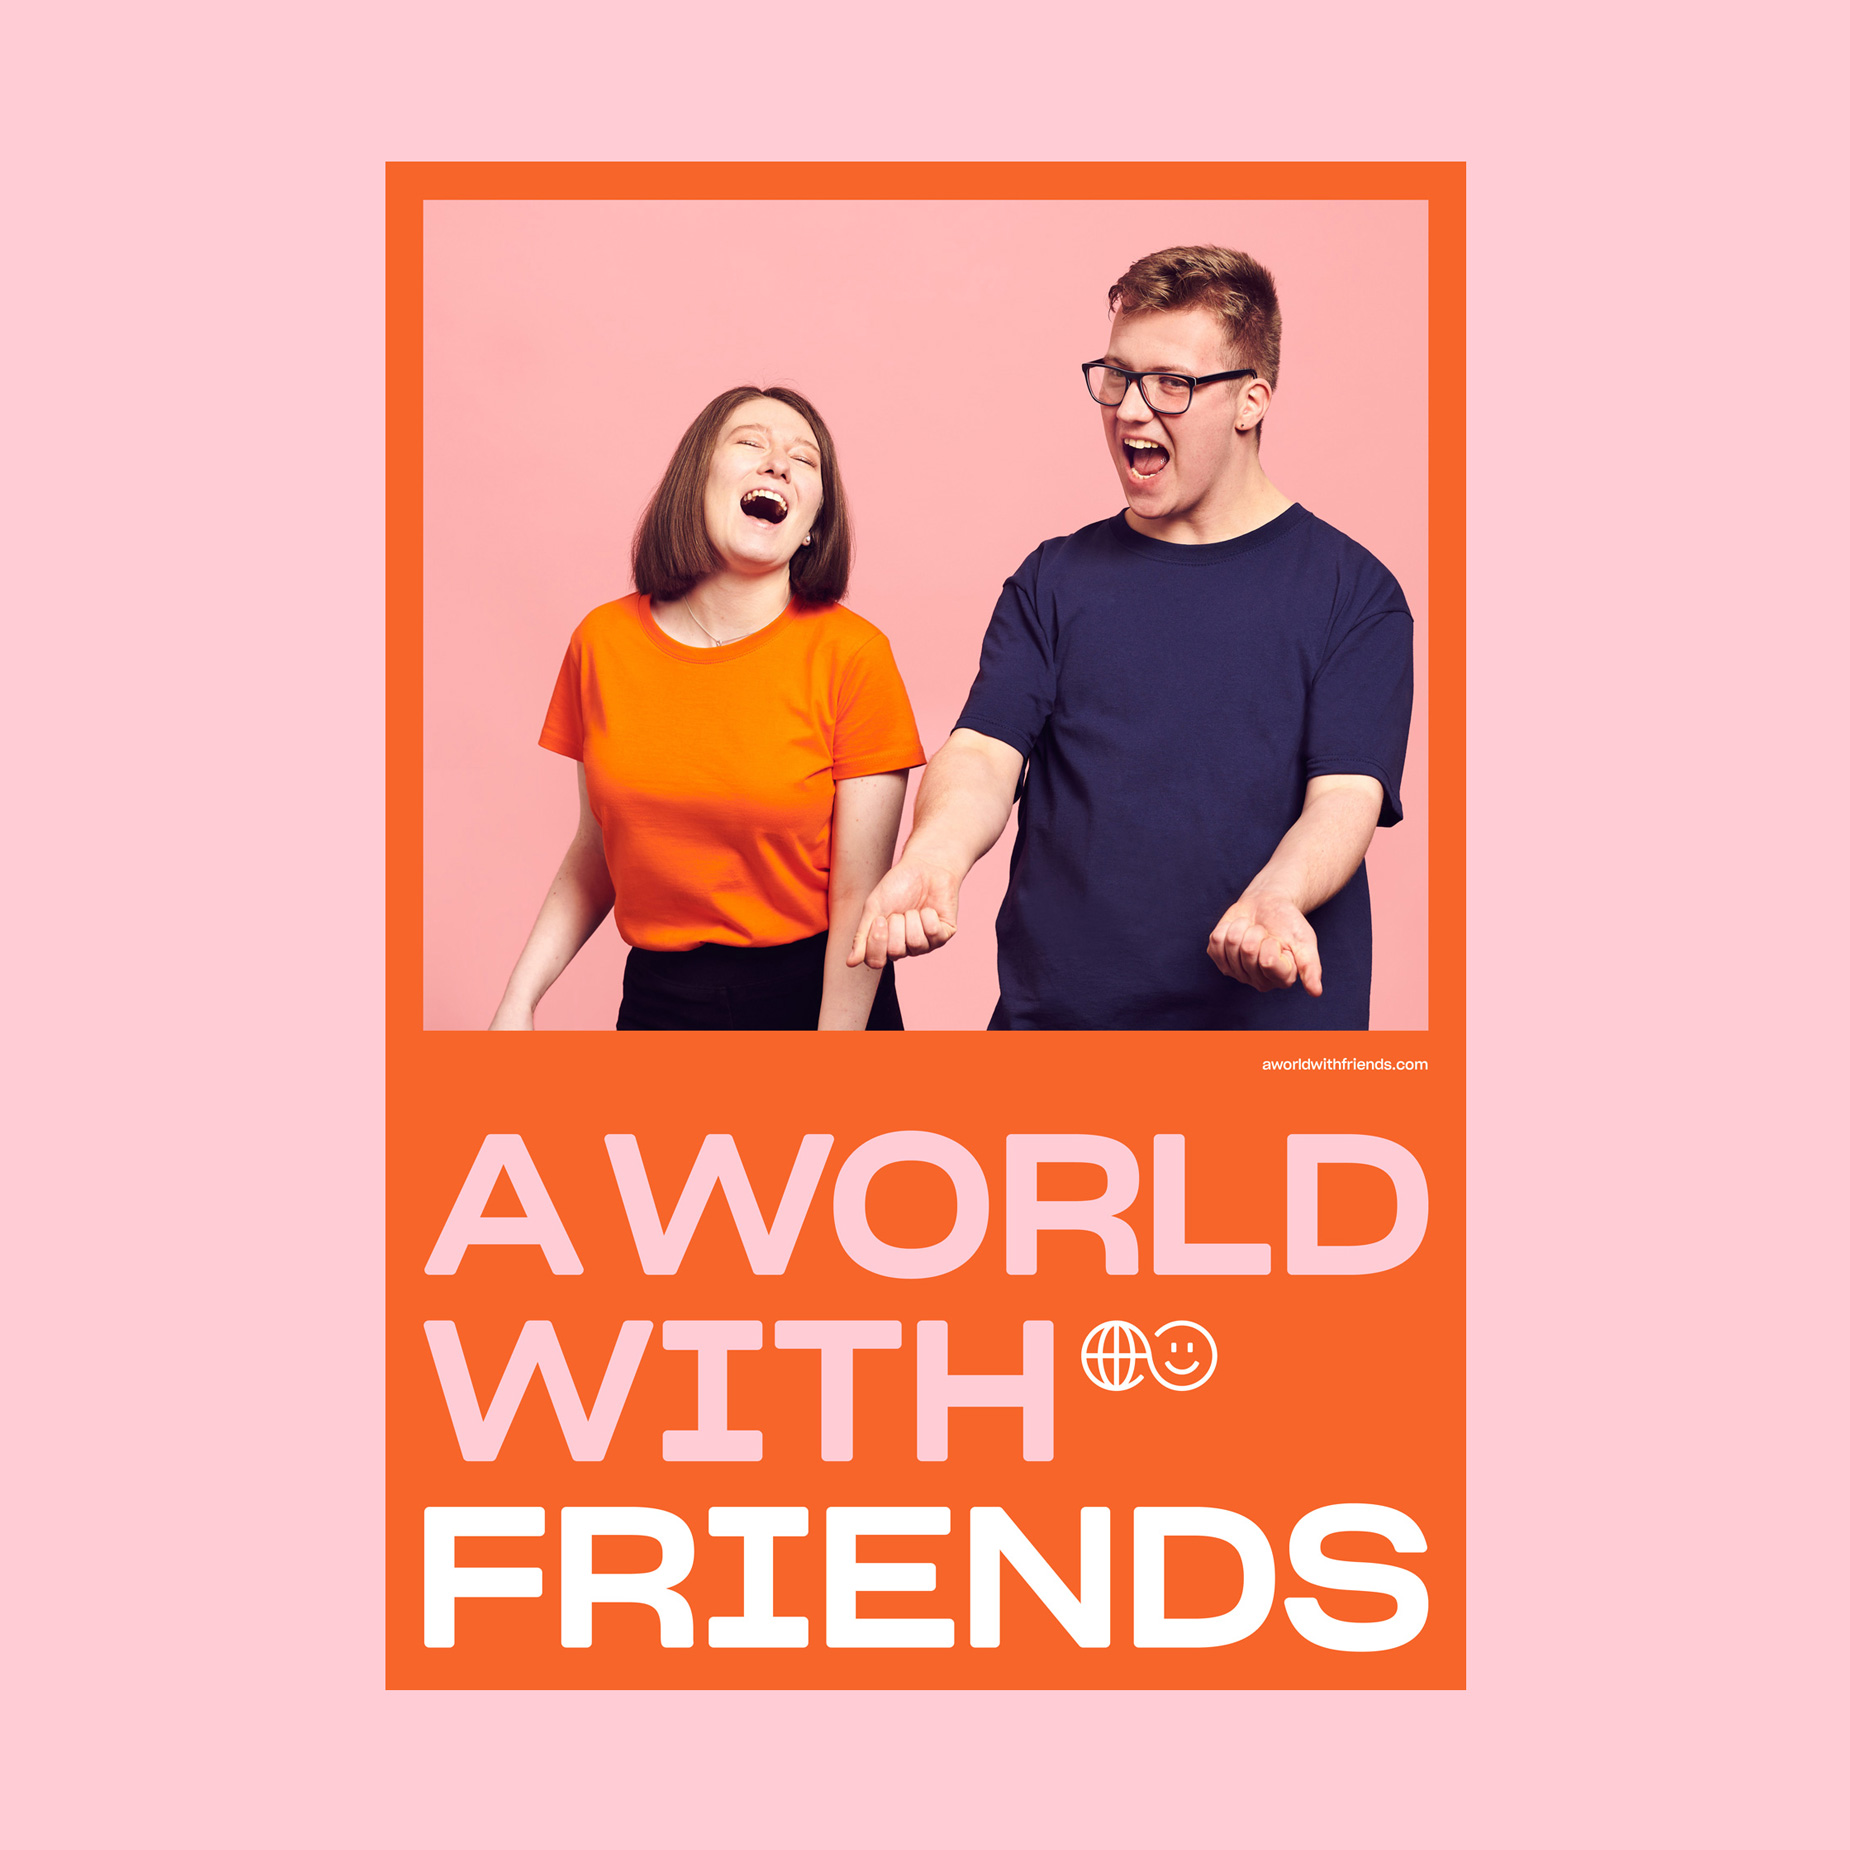 A-World-With-Friends-1x1_05